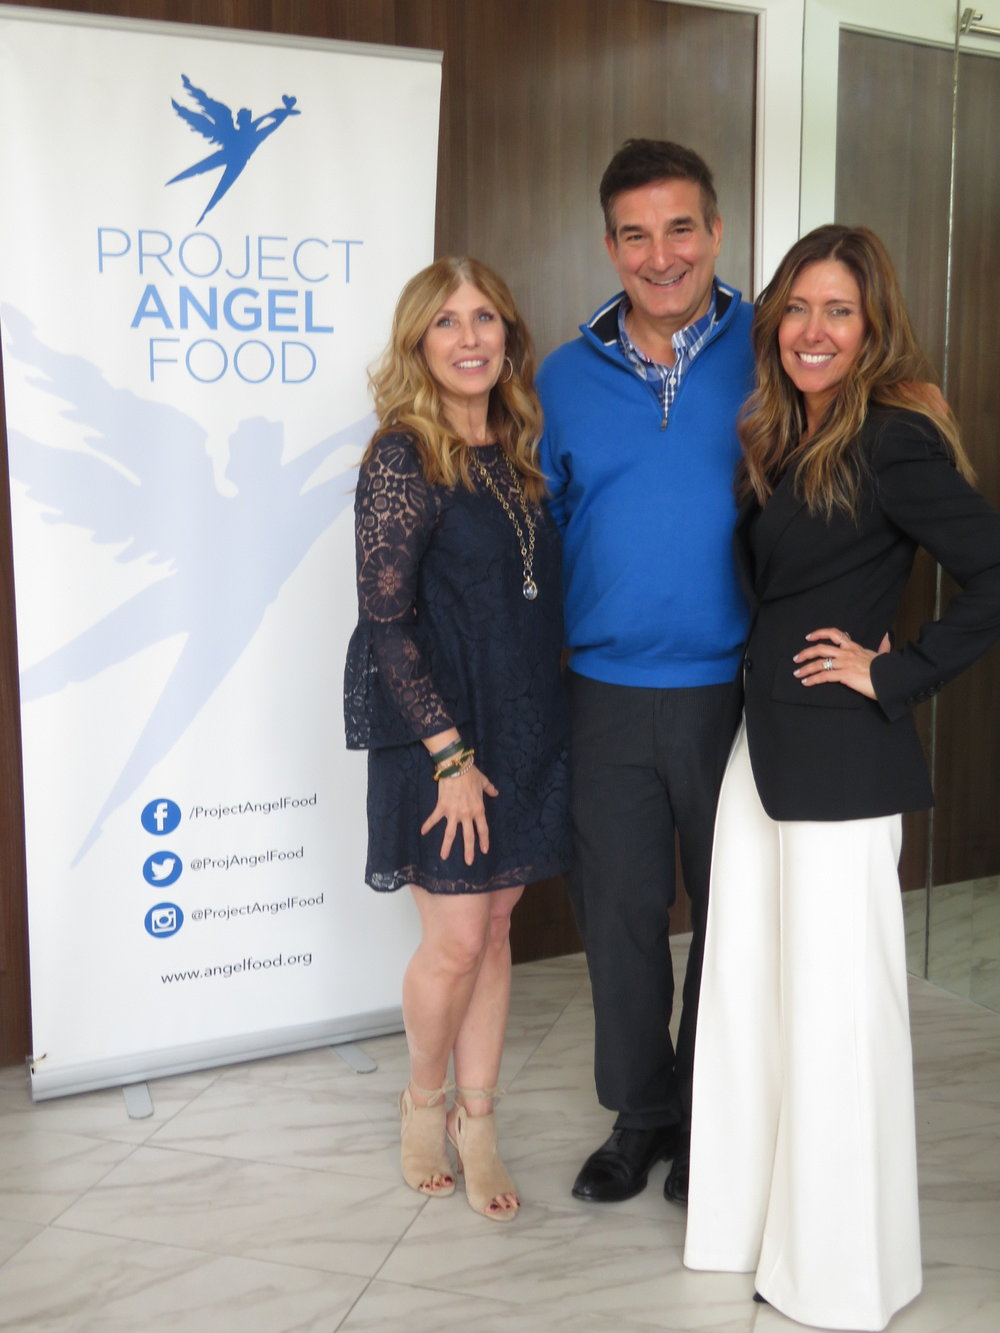 Linda Thompson - Founder  Olie Biologique / Richard Ayoub - Executive Director / Project Angel Food / Melissa Meyers - Founder - The Glow Girl